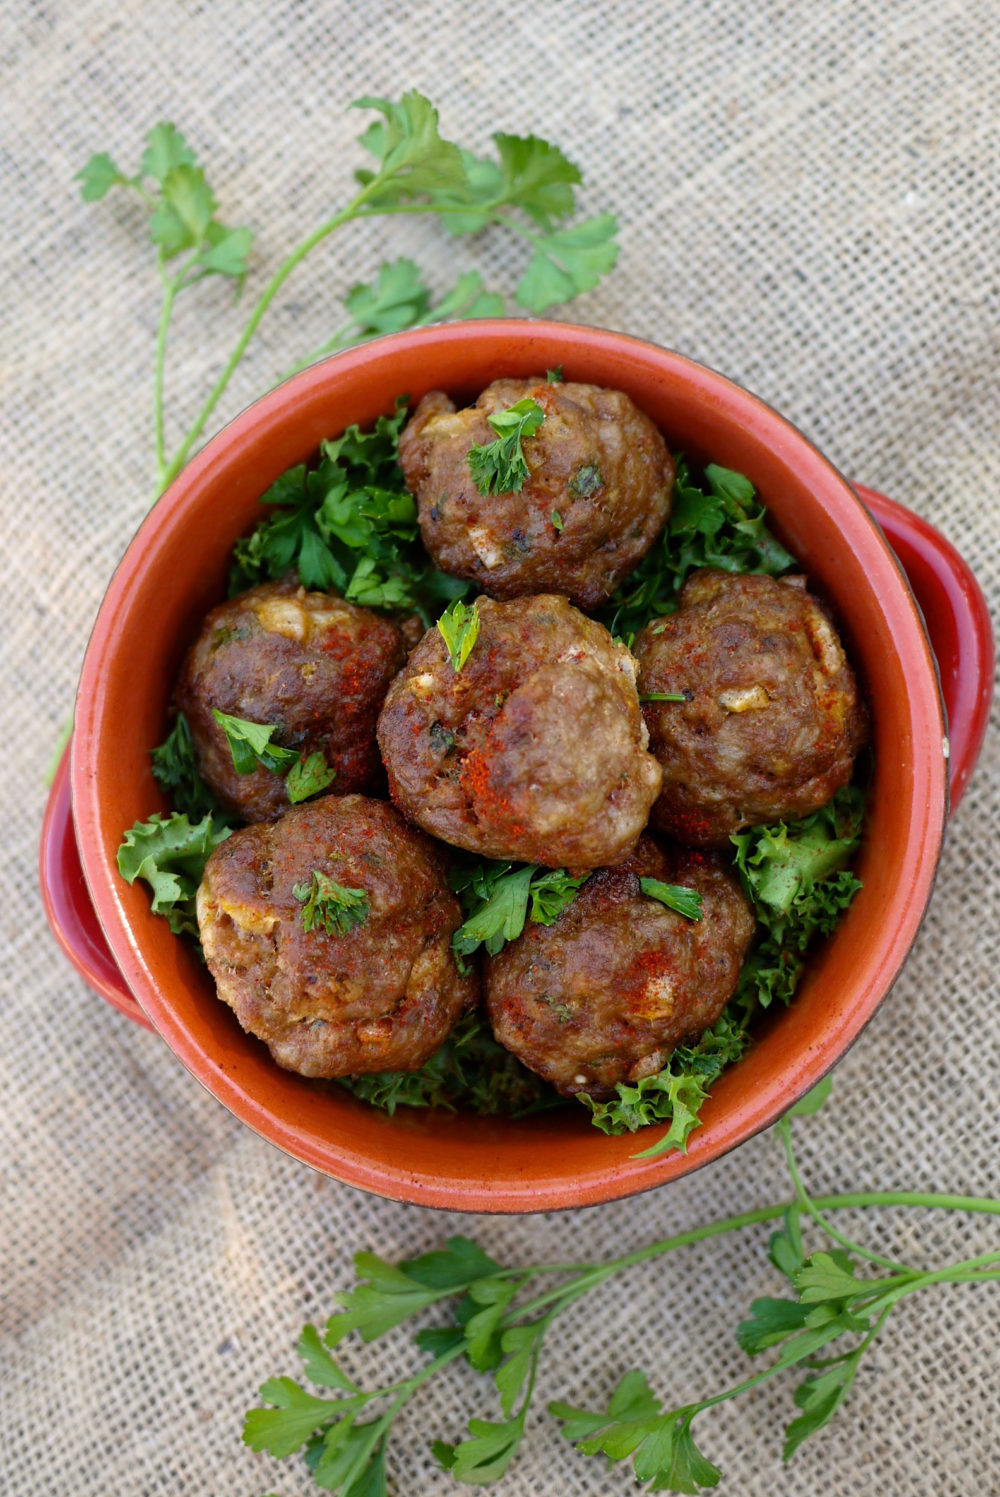 Spiced lemon meatballs